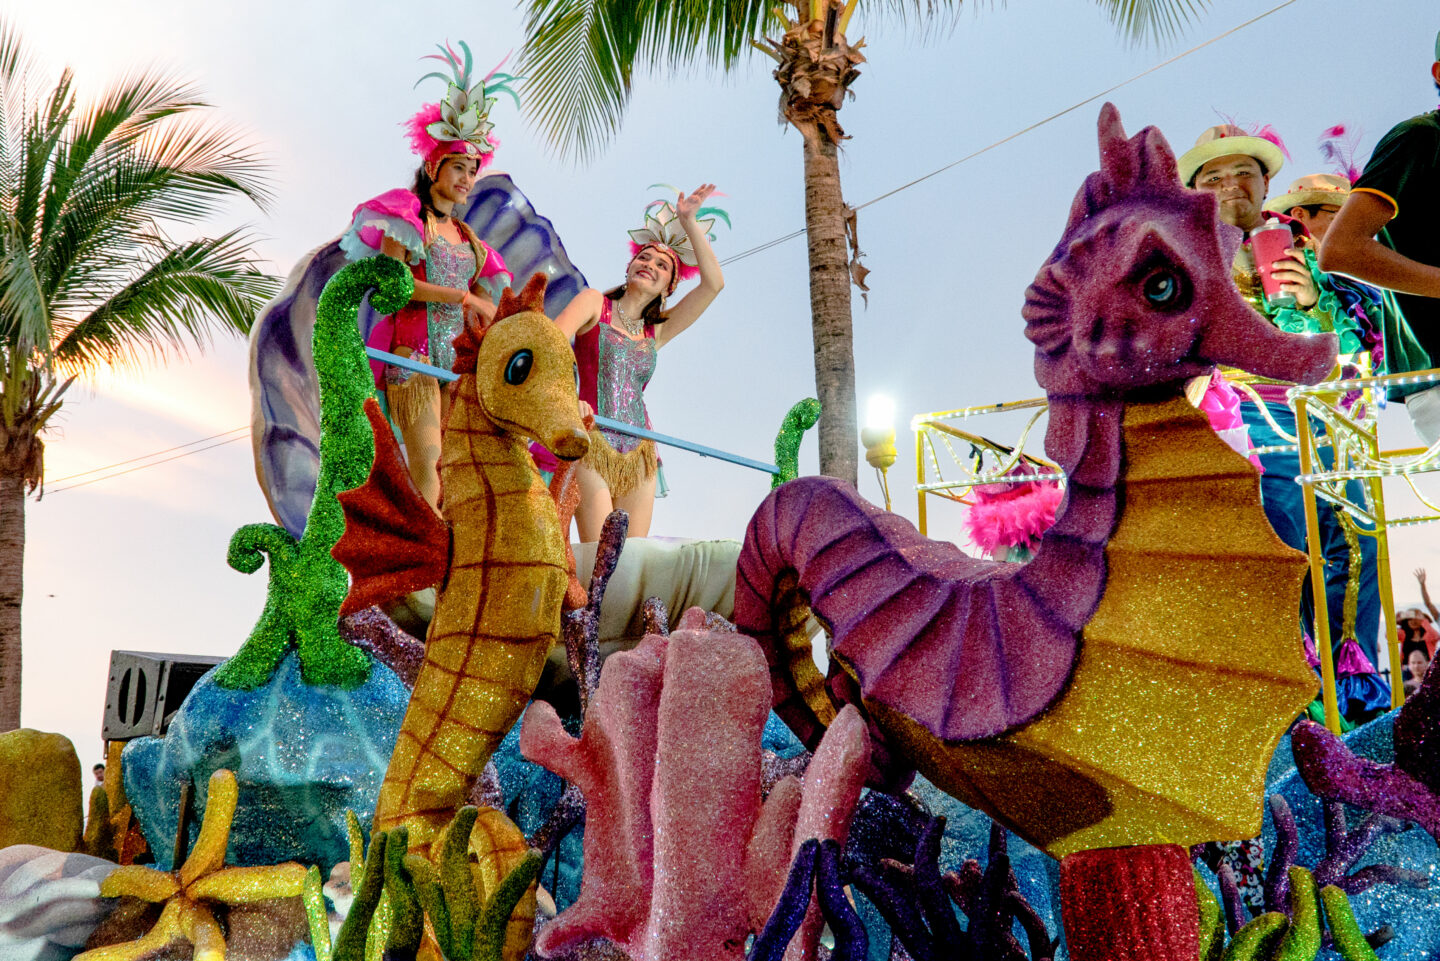 Carnaval in Cozumel.  Most events occur at the Parque Quintana Roo, where the parade begins.